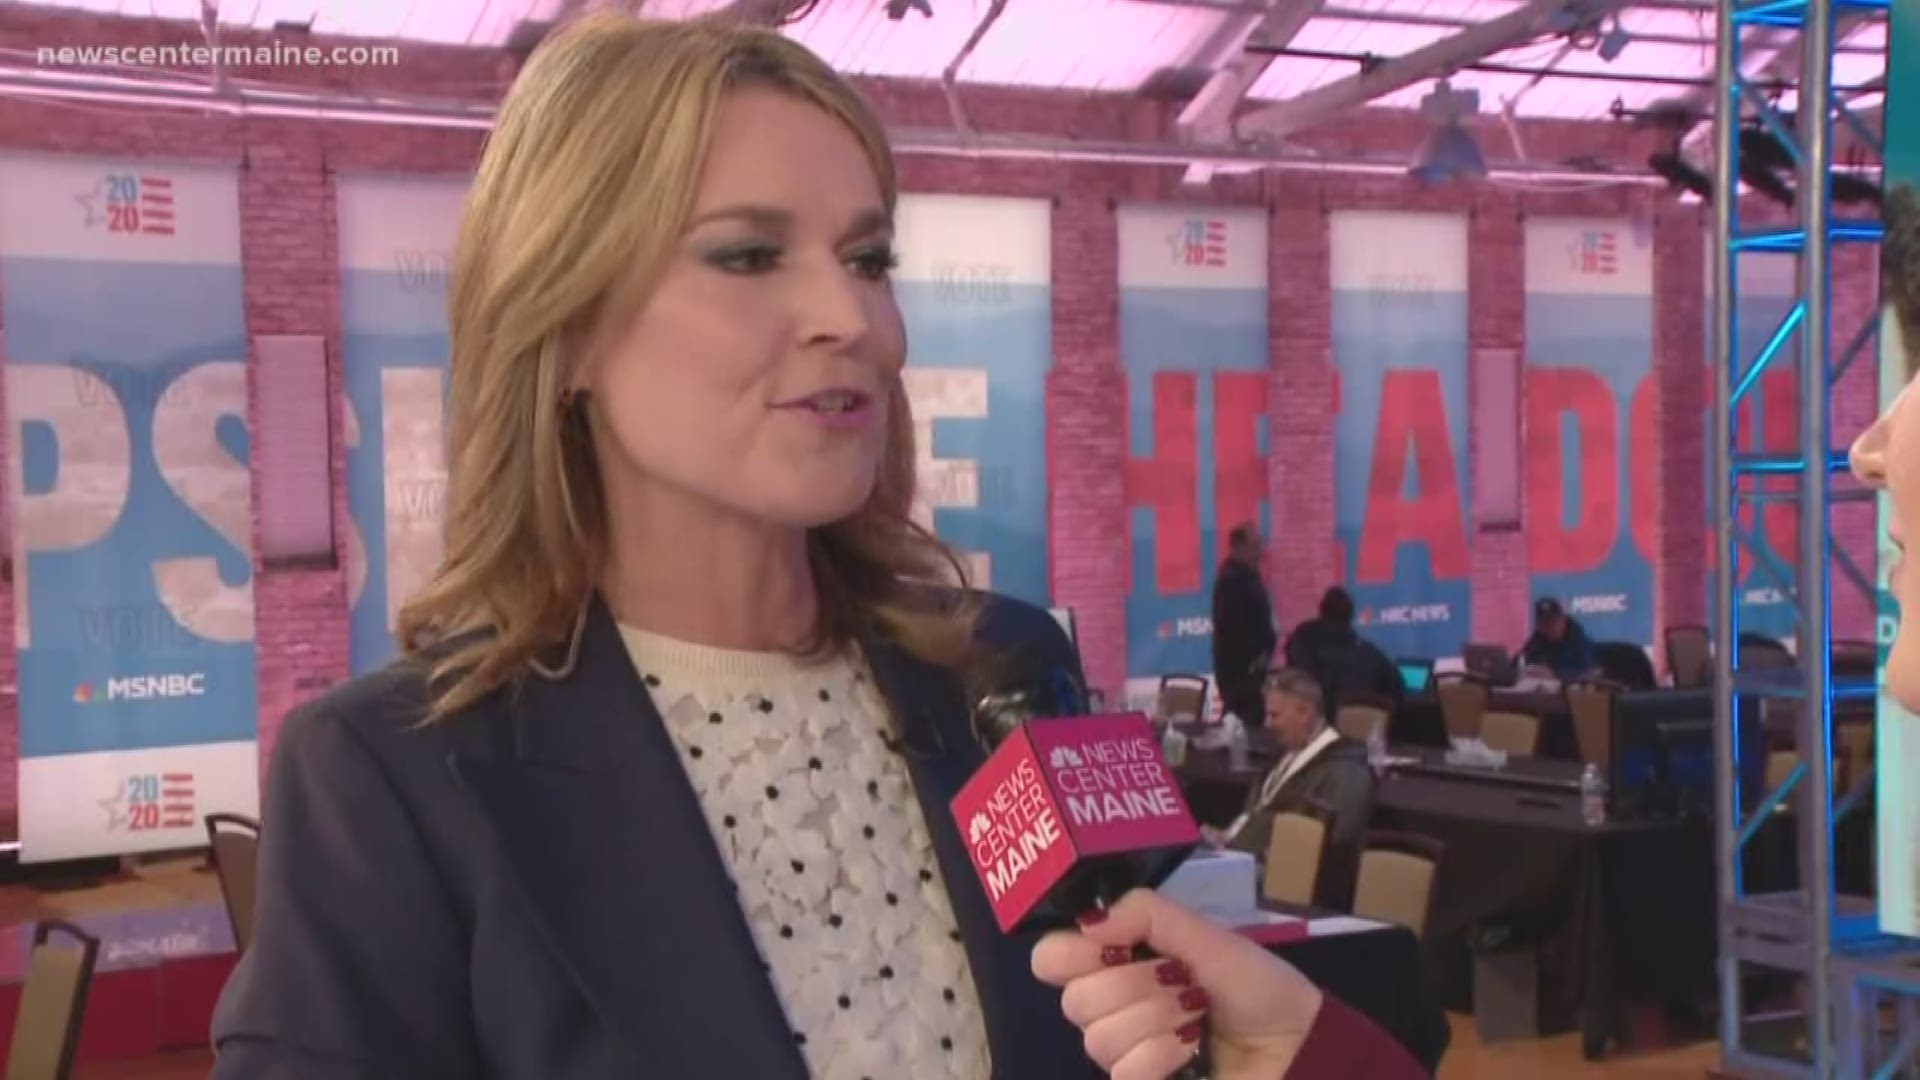 Savannah Guthrie Has Been To Maine Only Once But She S Heard About The Food Newscentermaine Com